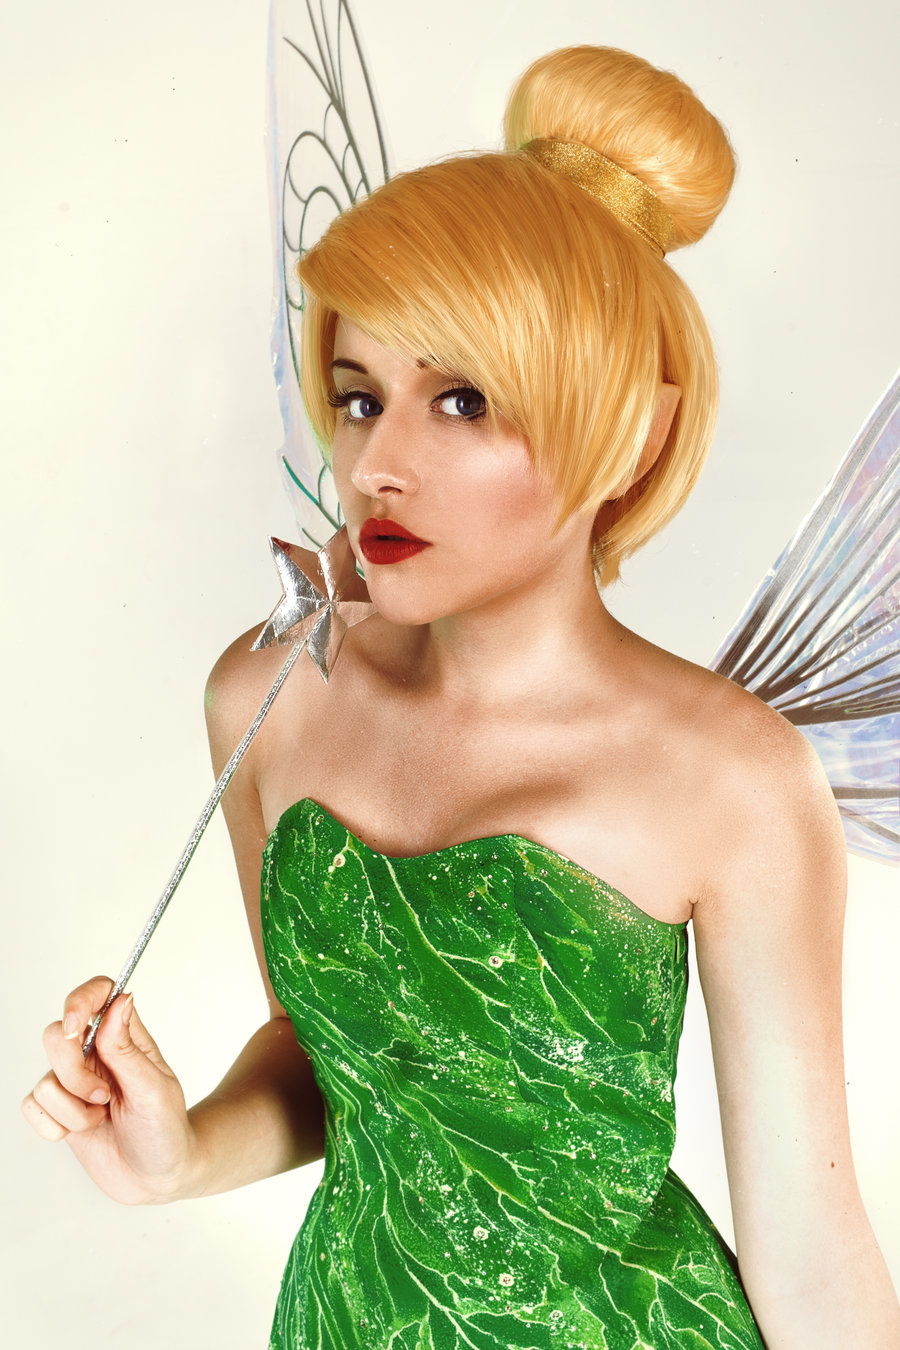 Tink Ichigo  is Tinkerbell | Photo by Michael Amkote